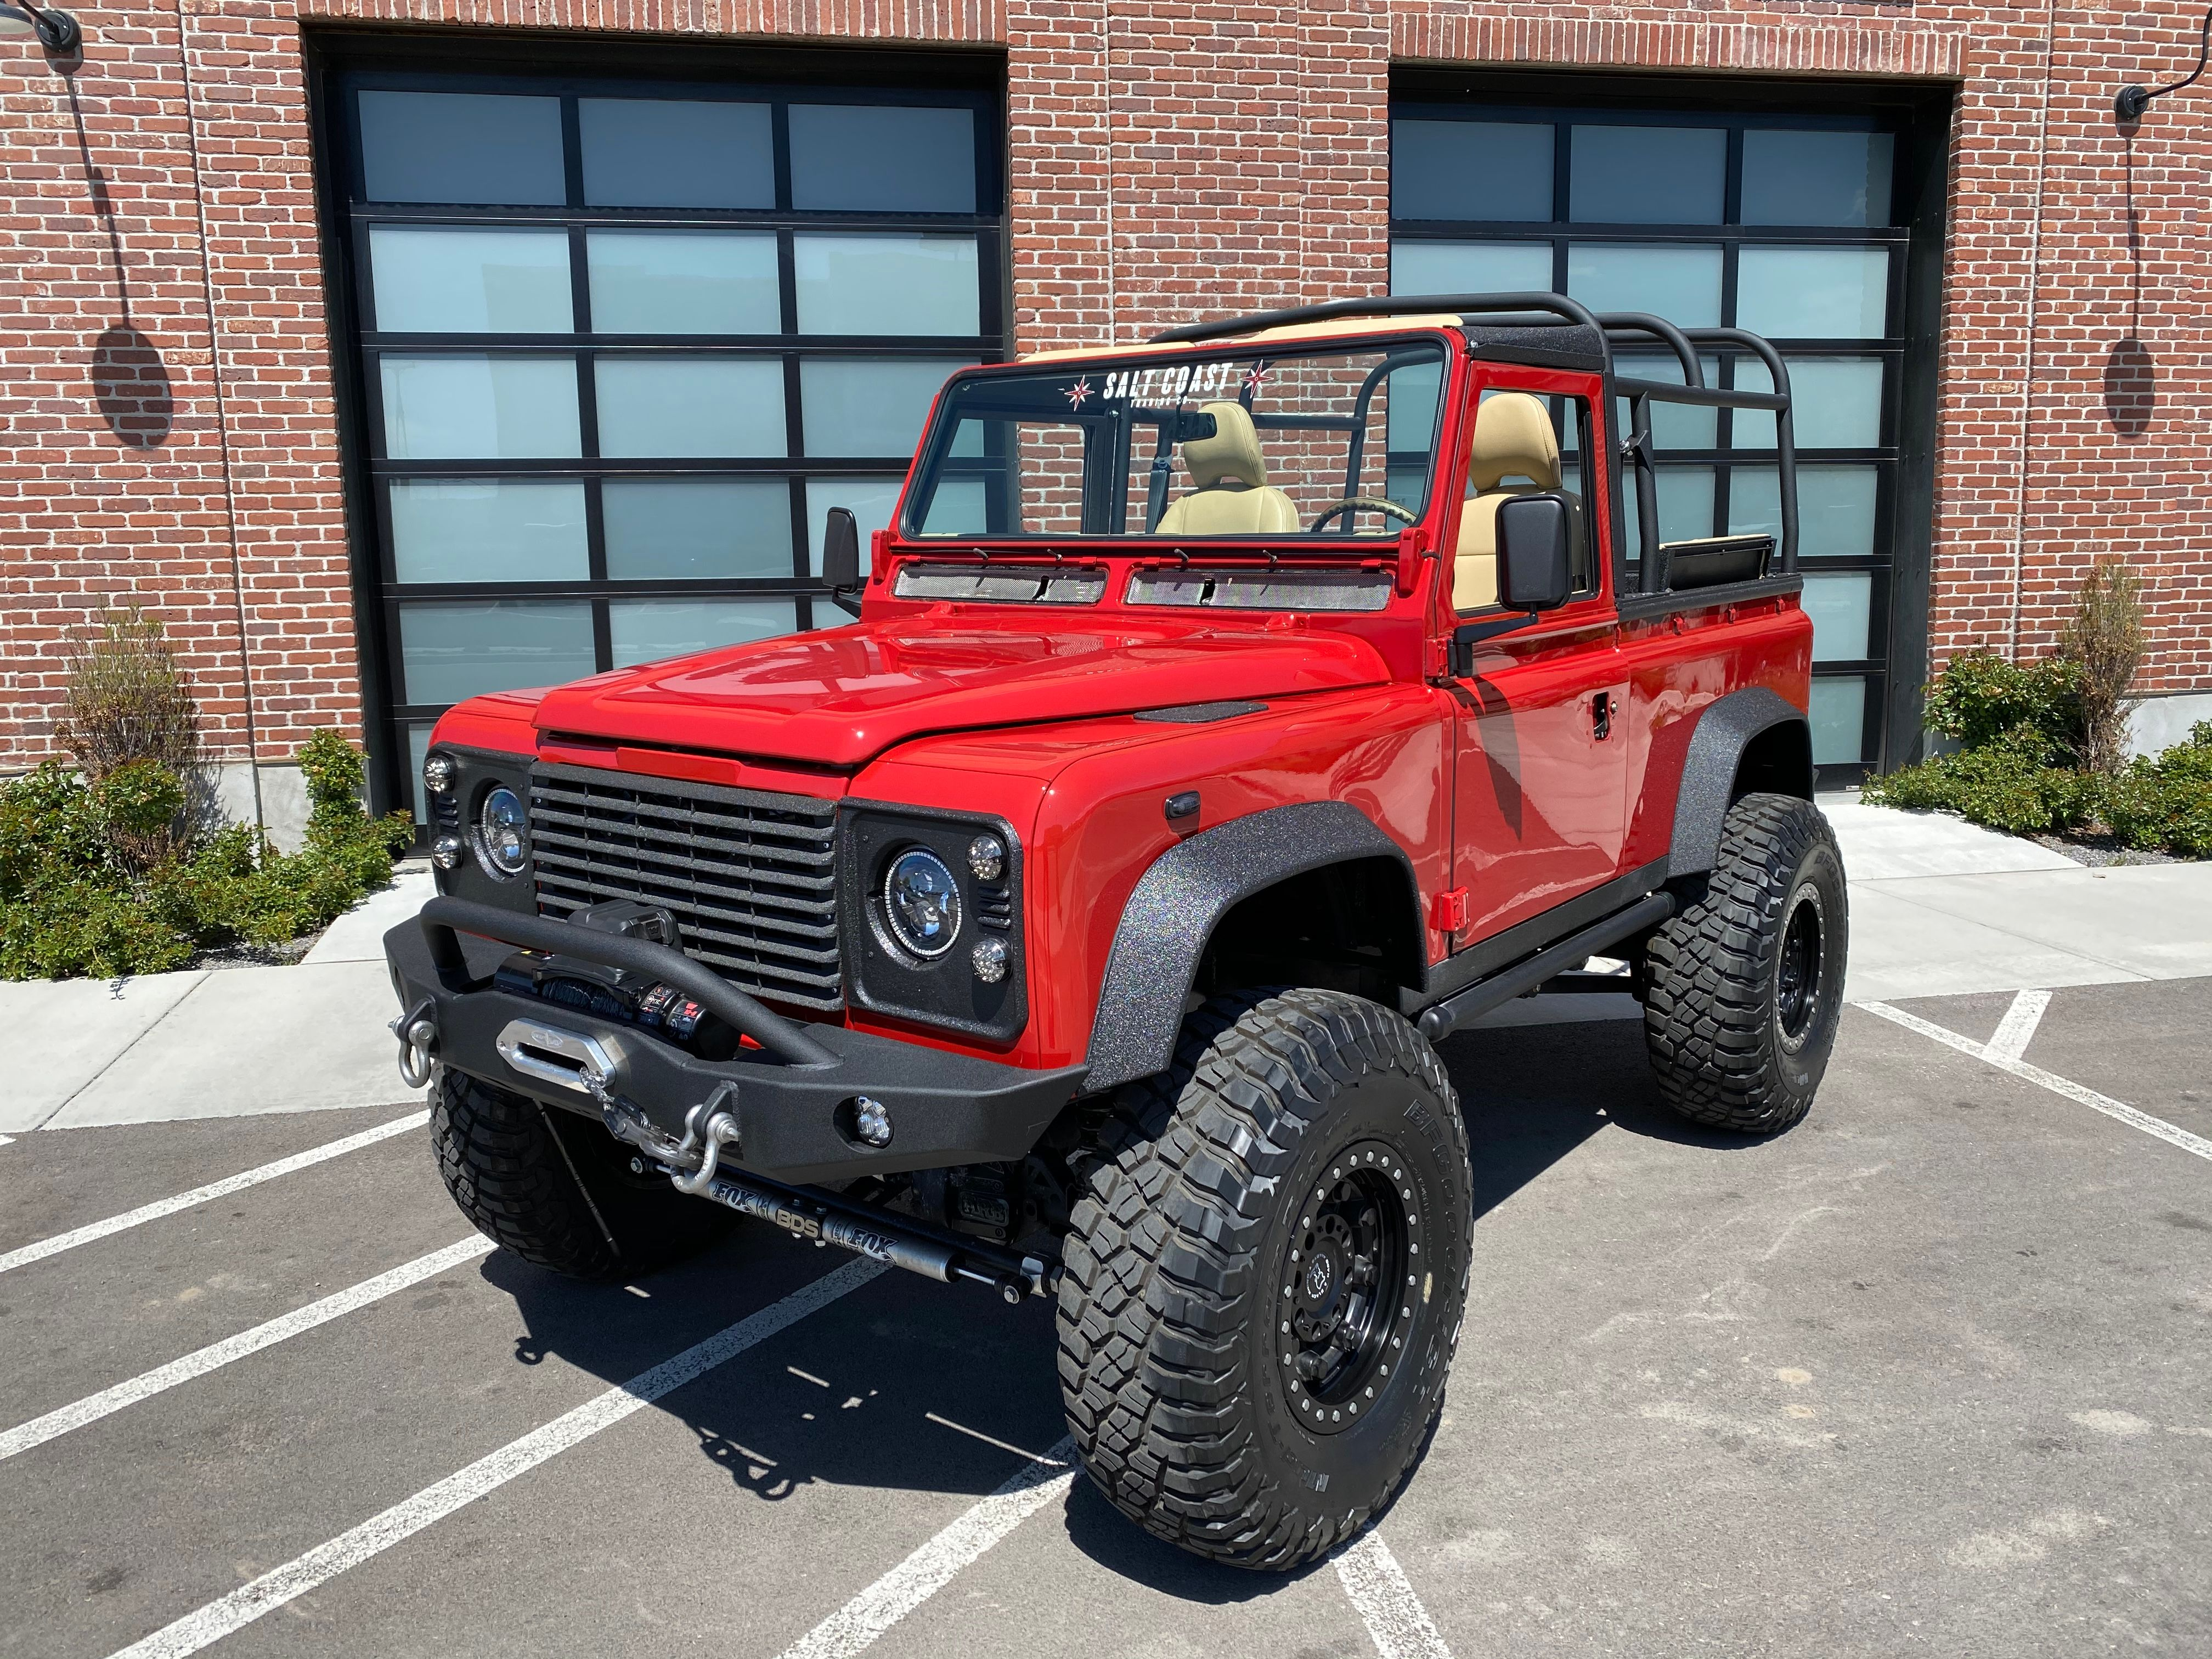 Pre-Owned 1985 Land Rover Defender 90